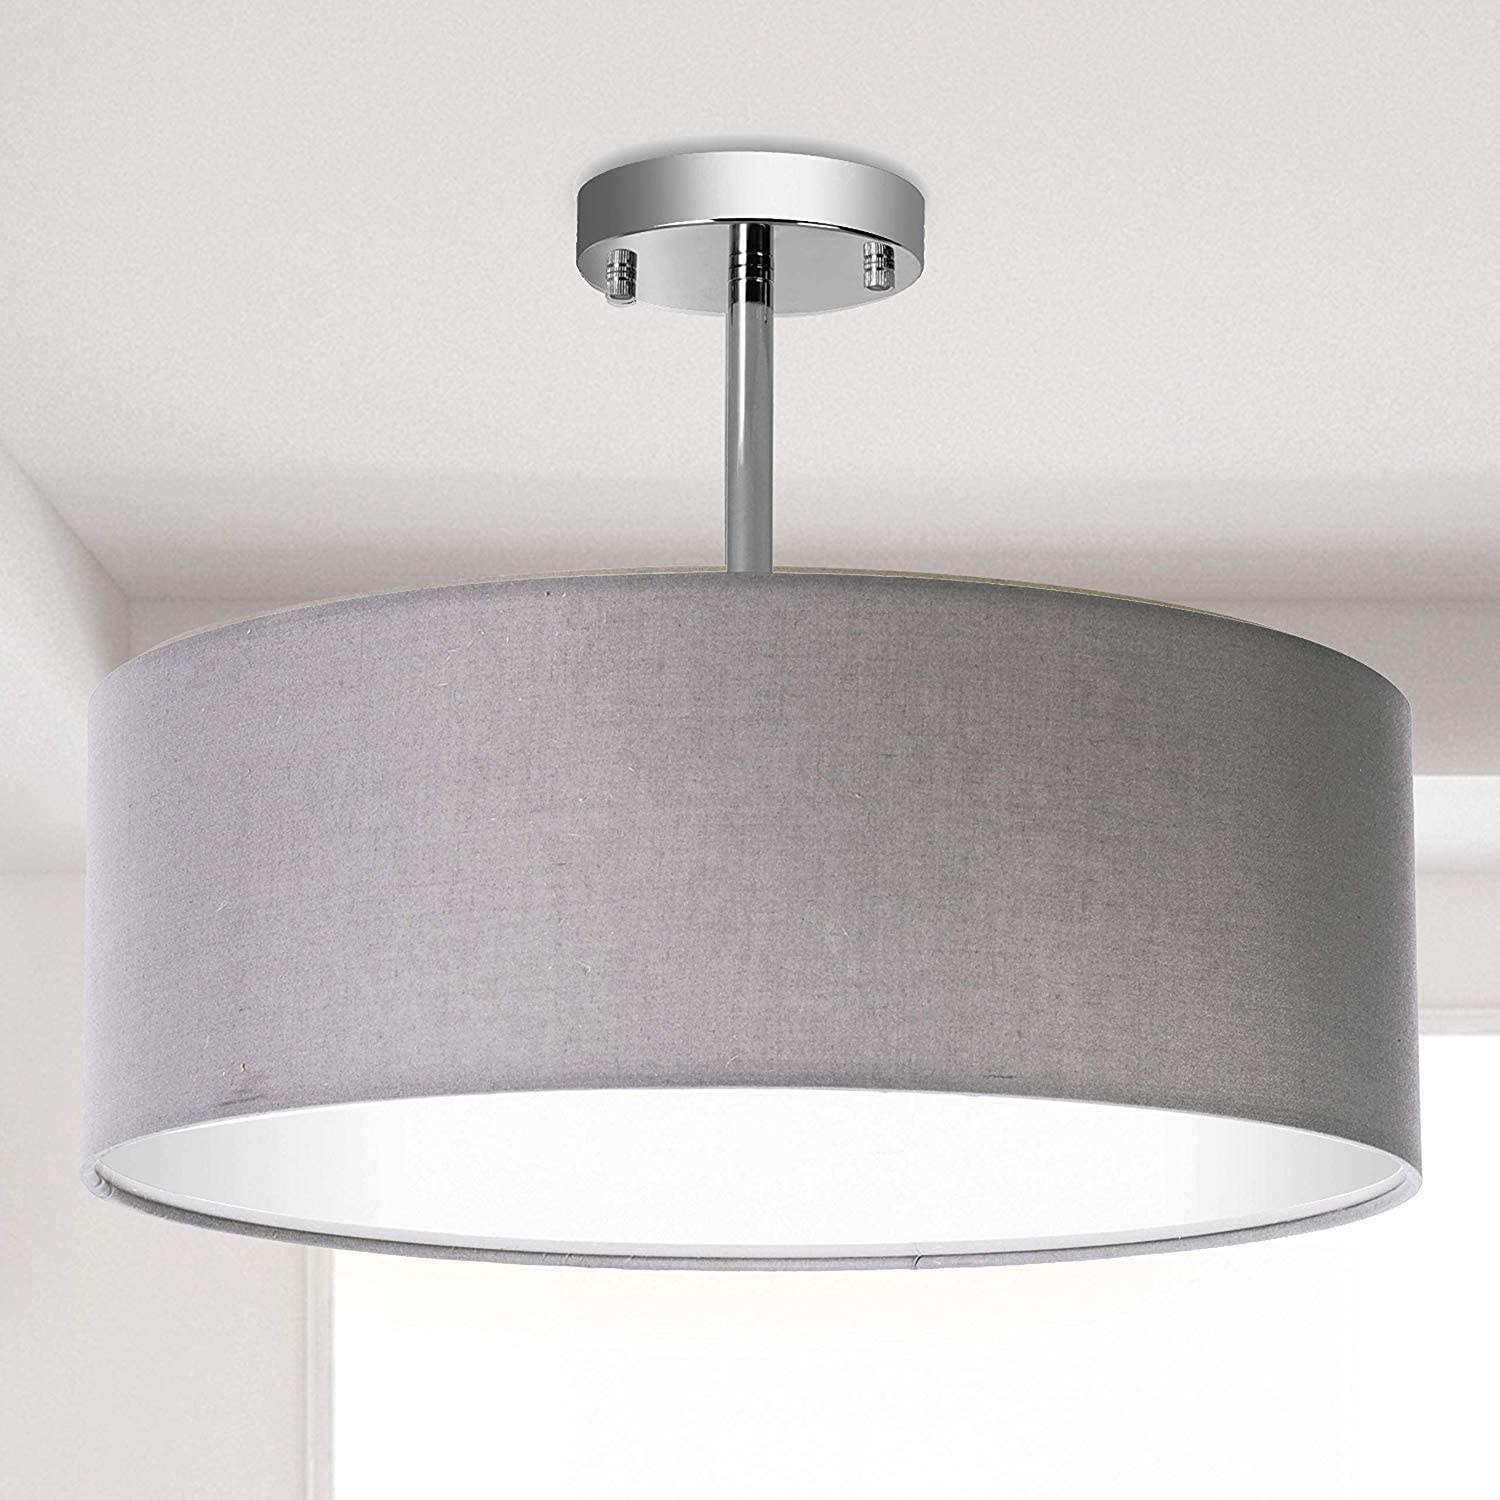 Ceiling Light, Modern Fabric Pendant Light Shade, Large Grey Drum